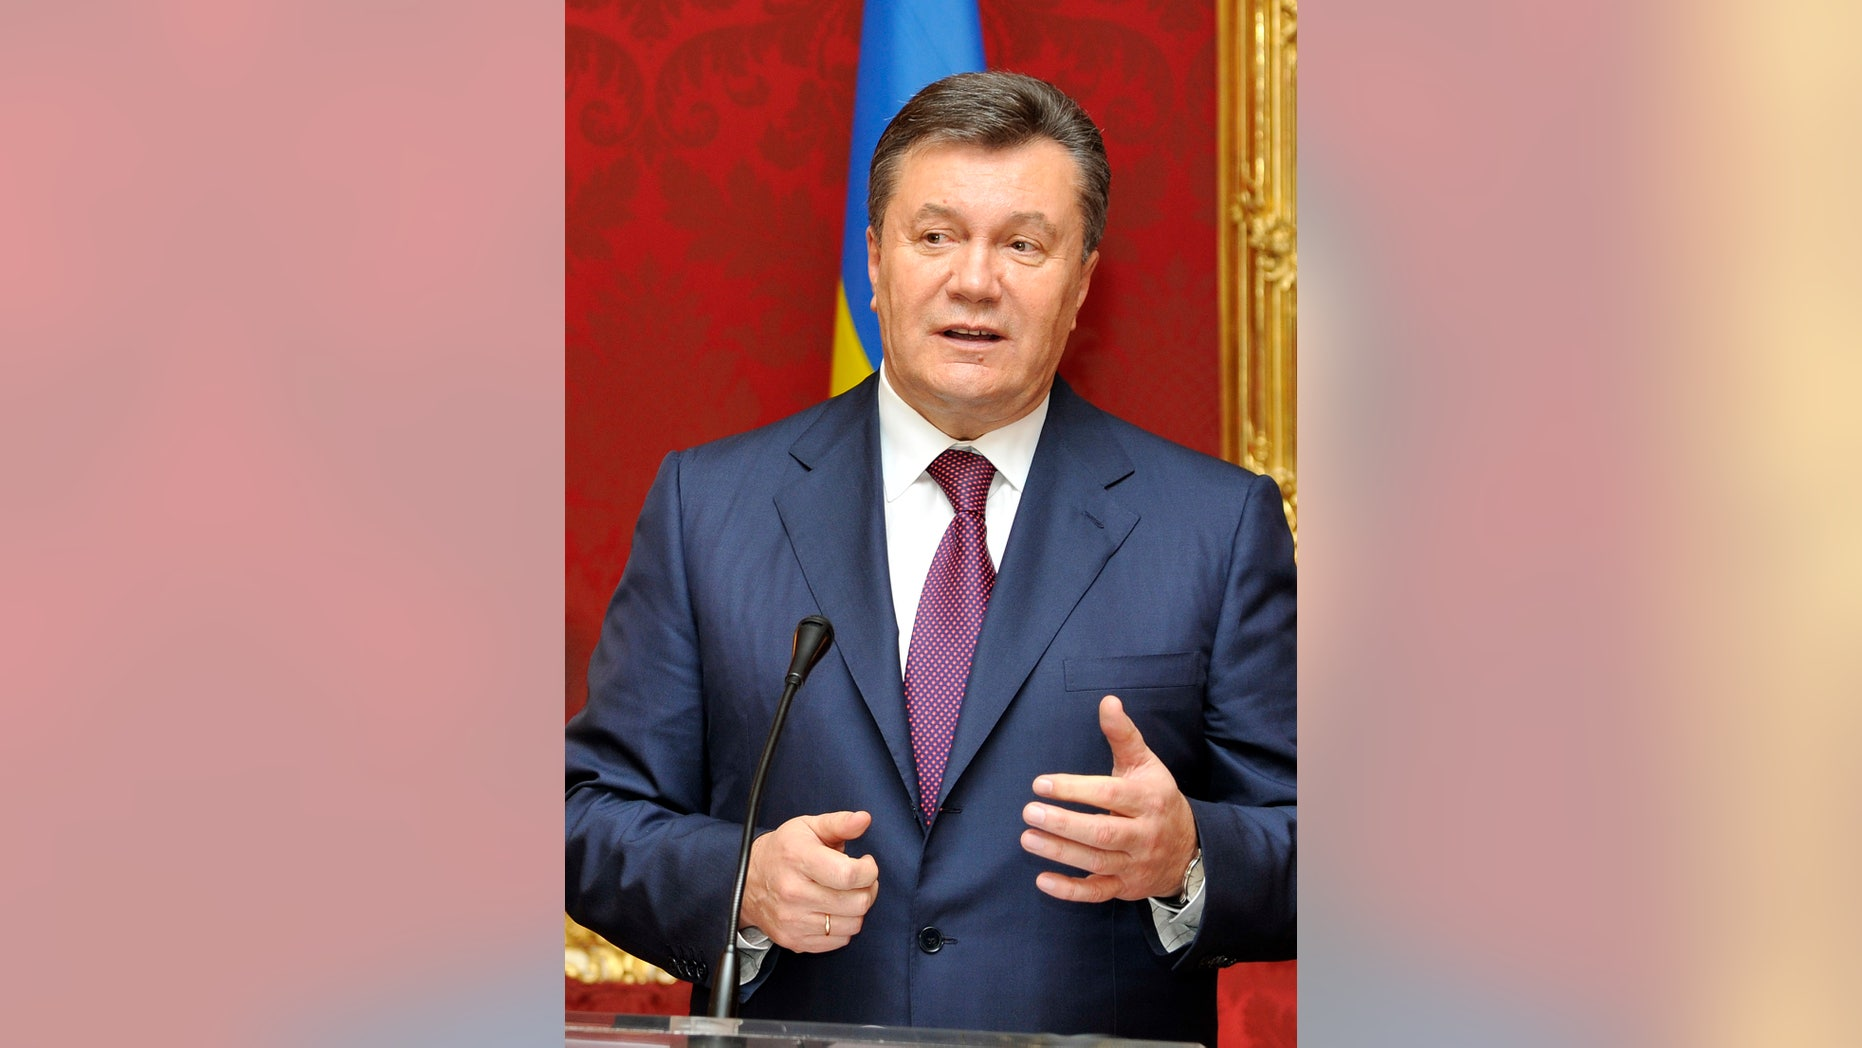 FILE - In this Thursday, Nov. 21, 2013 file photo, Ukrainian President Viktor Yanukovych speaks during a news conference after his meeting with Austrian President at the Hofburg palace, in Vienna, Austria. Yanukovych suffered a humiliation in 2004 when his victory in the fraud-tainted presidential election was declared void under the pressure of massive unprecedented protests dubbed the Orange Revolution, allowing his pro-Western rival to win power. But Yanukovych took advantage of the troubled economy and infighting in the Orange camp to win the 2010 presidential vote. (AP Photo/Hans Punz, File)